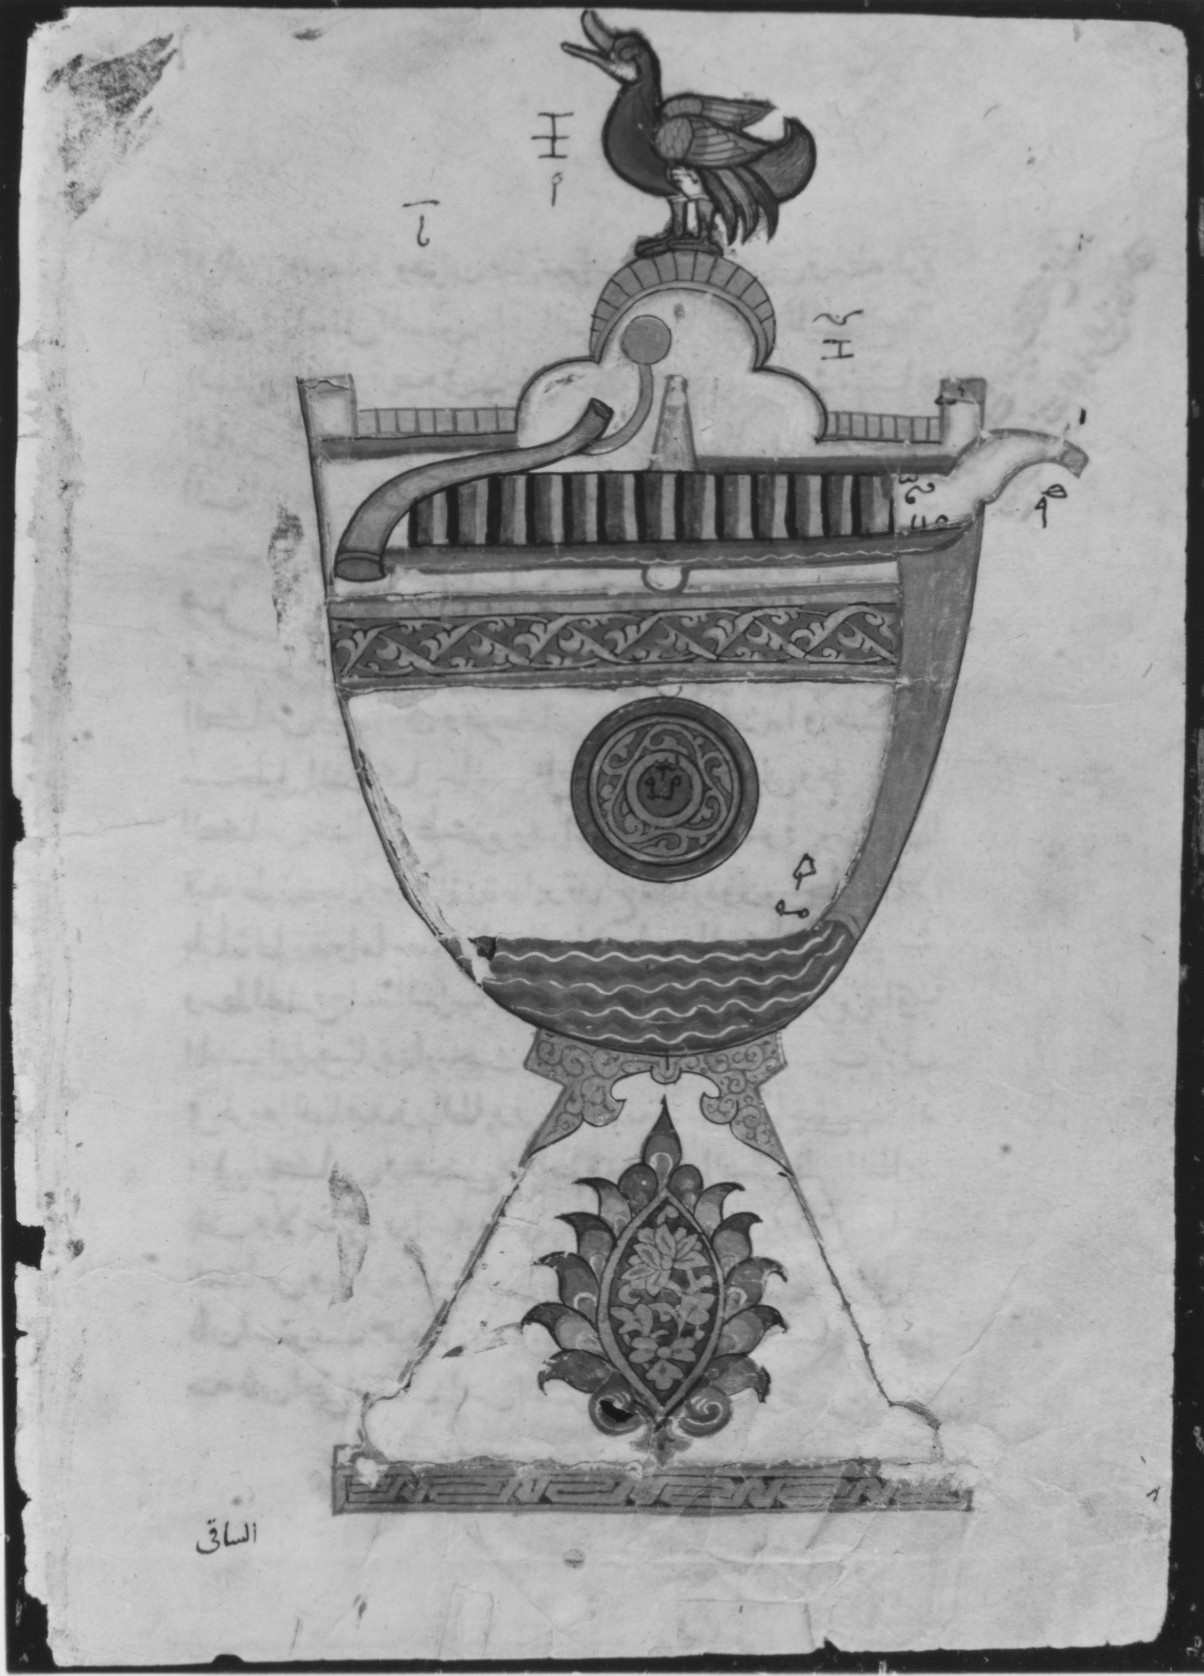 Design for a Cup to Serve Wine at Drinking Parties